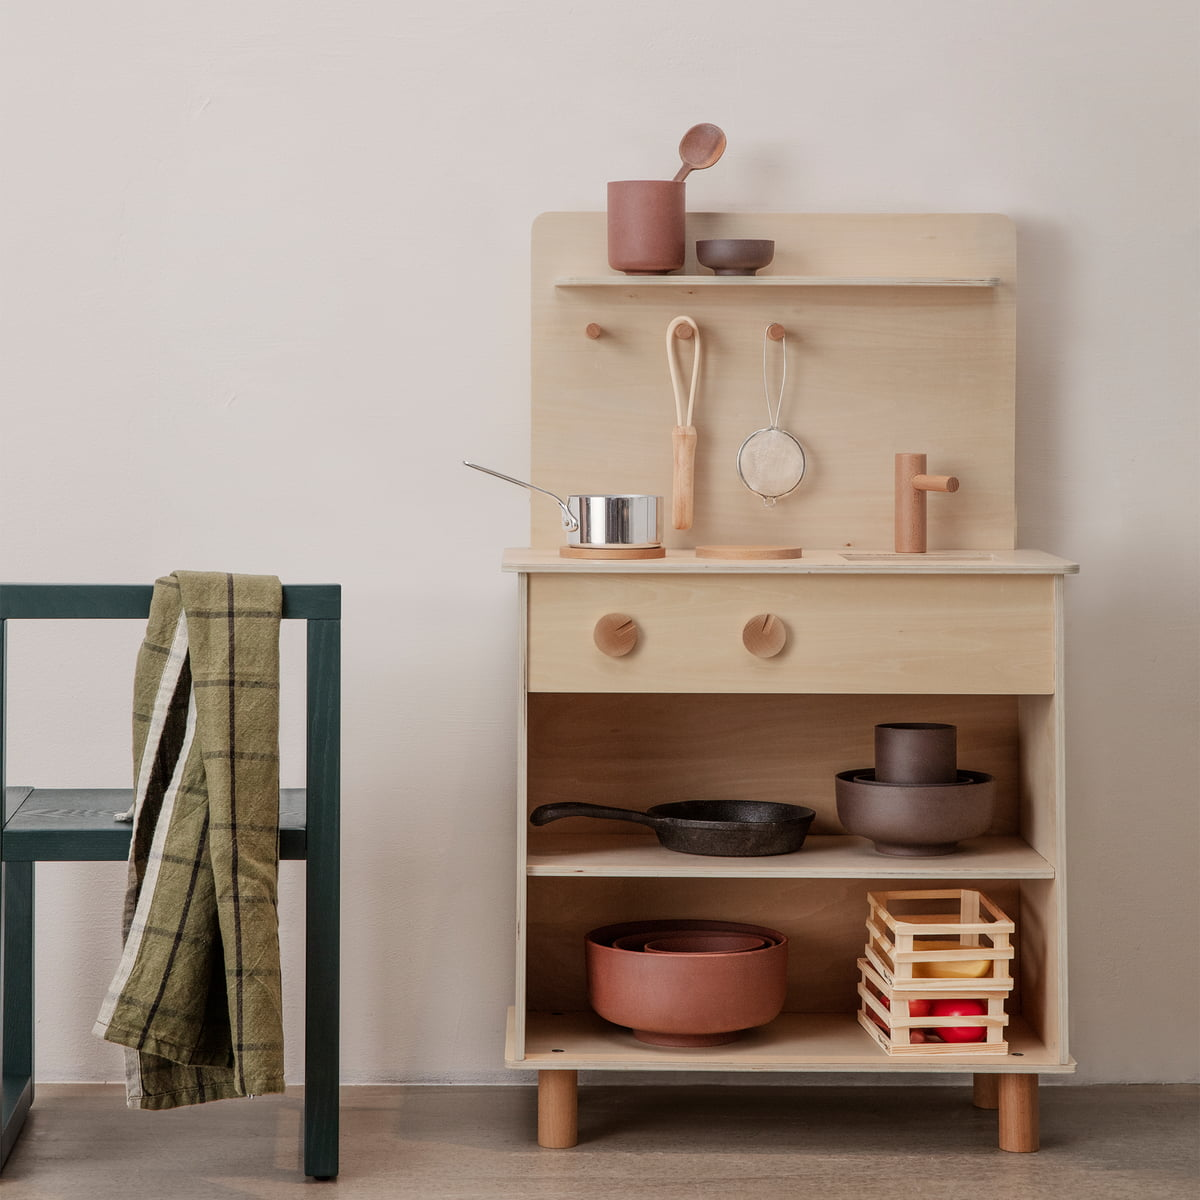 ferm living - Toro play kitchen | Connox